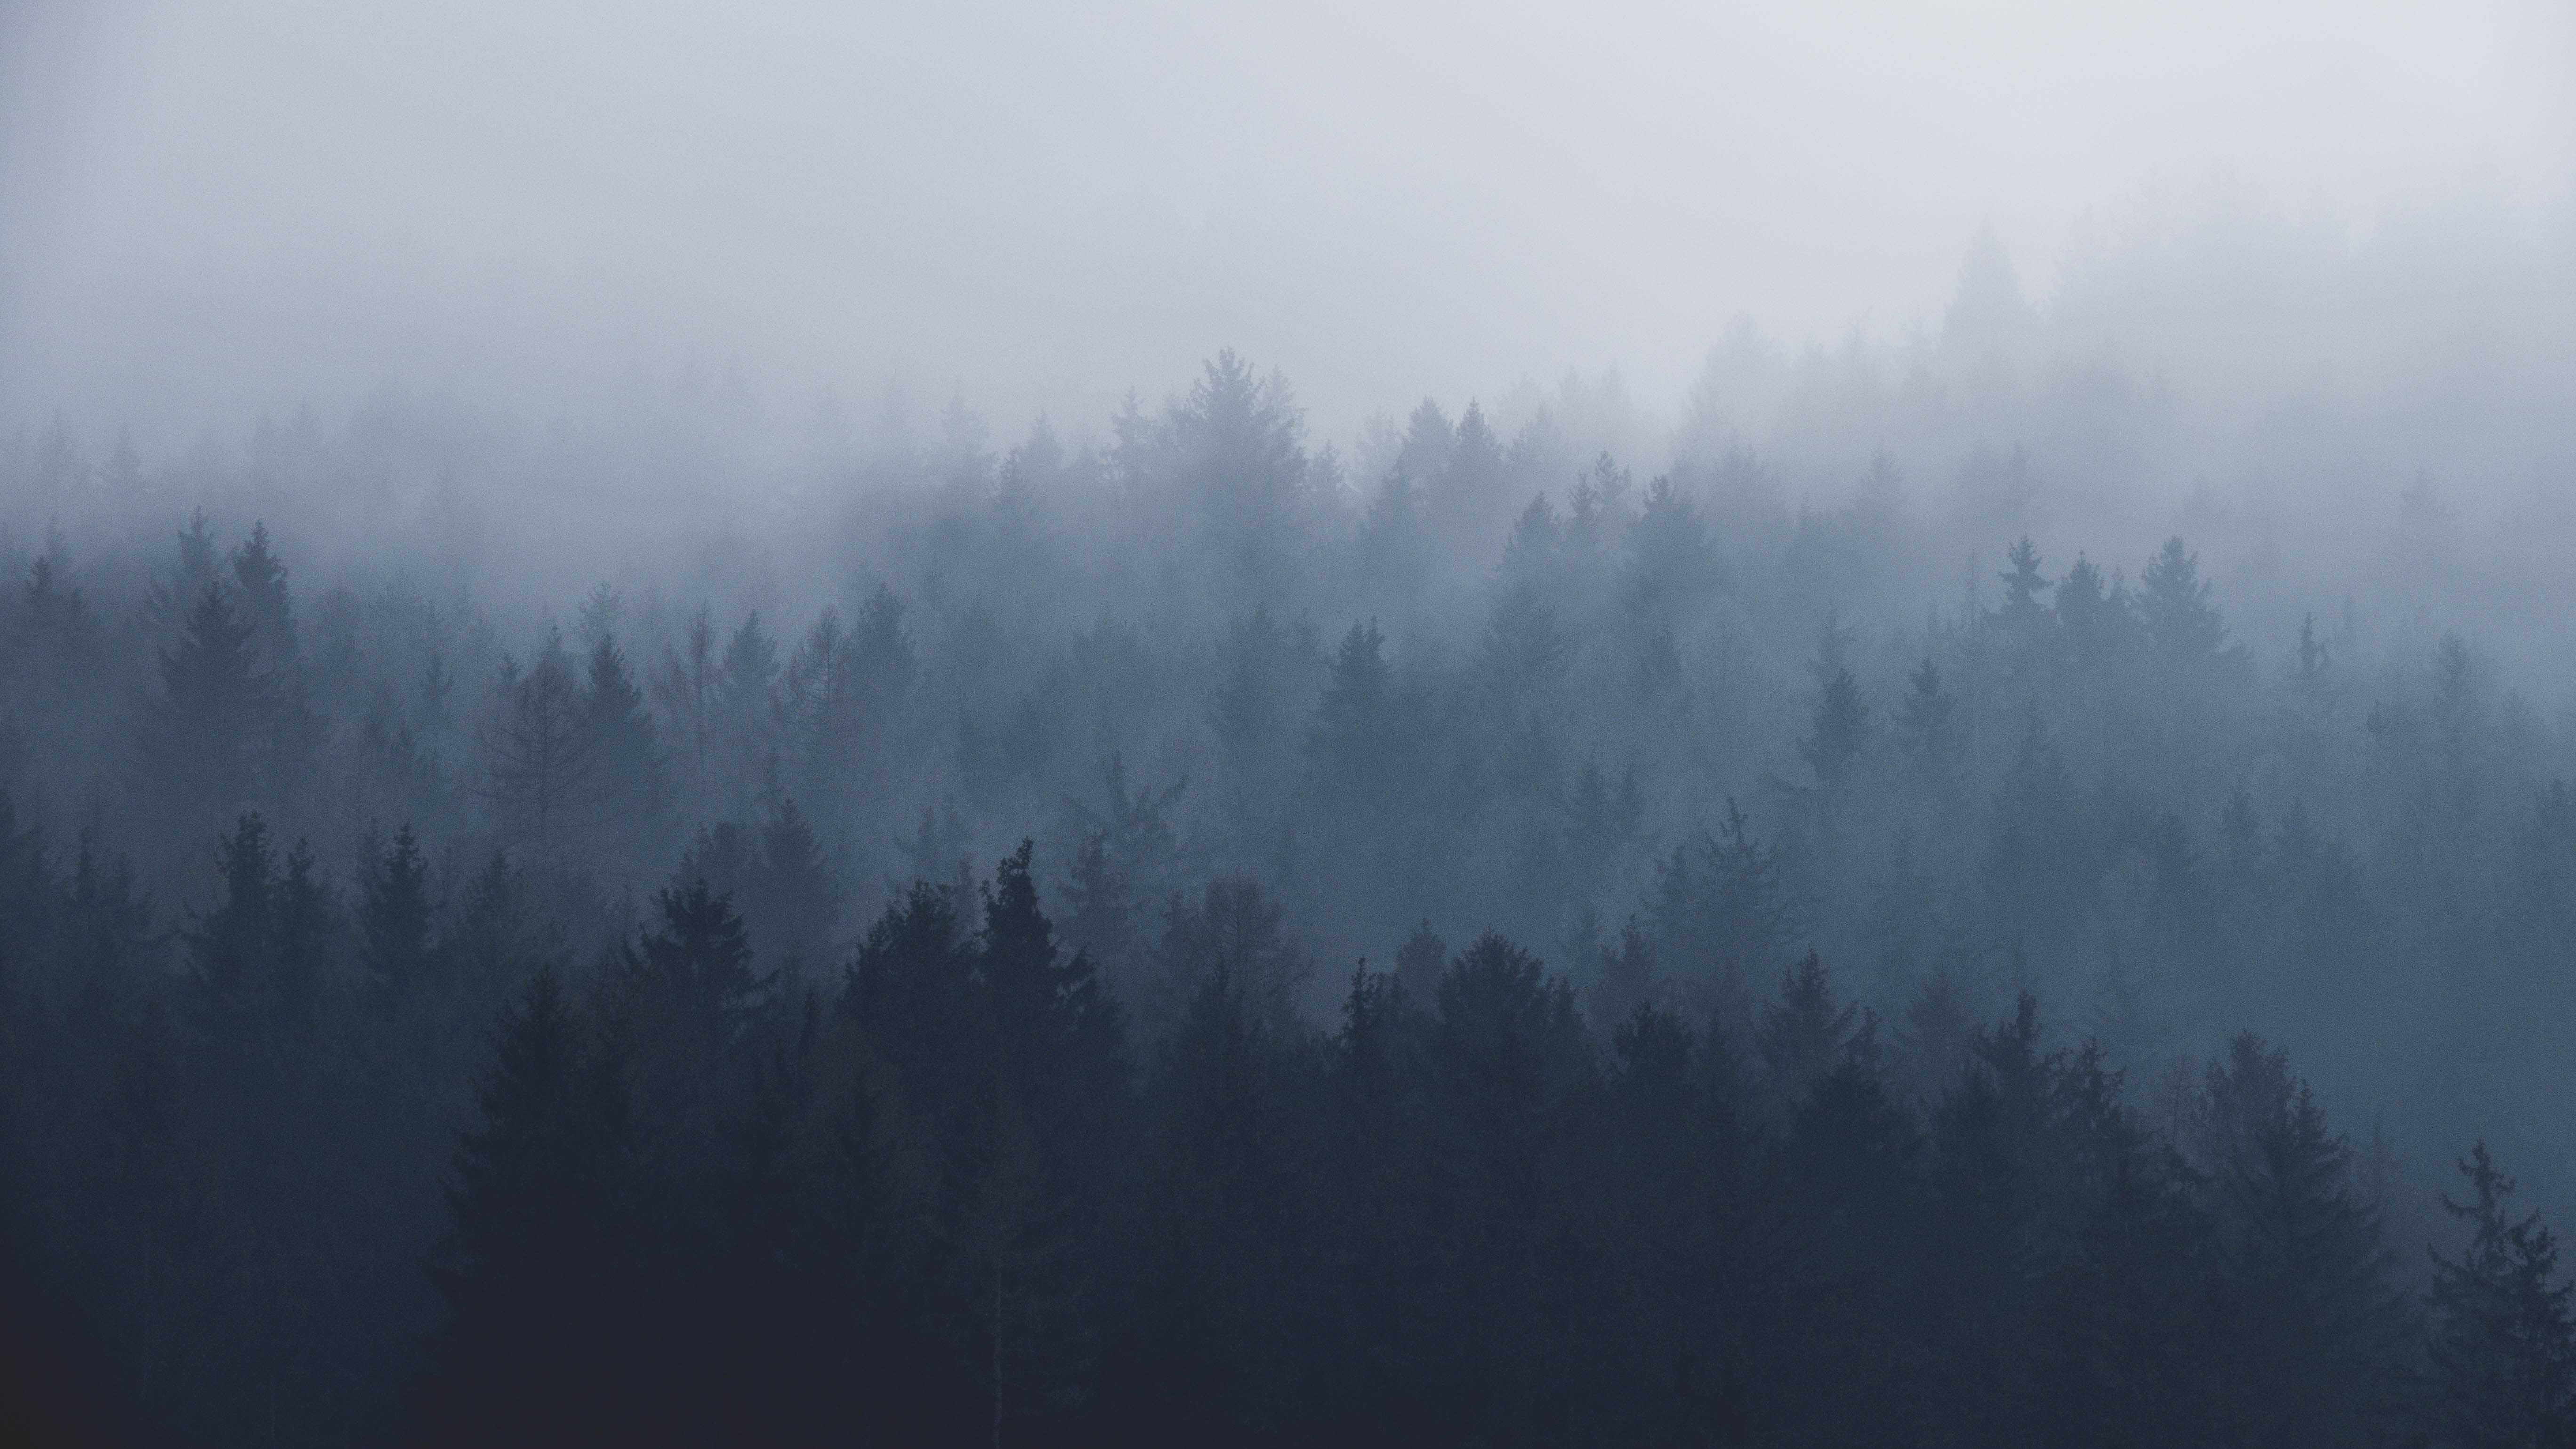 Parallel lines of evergreen trees under a heavy mist